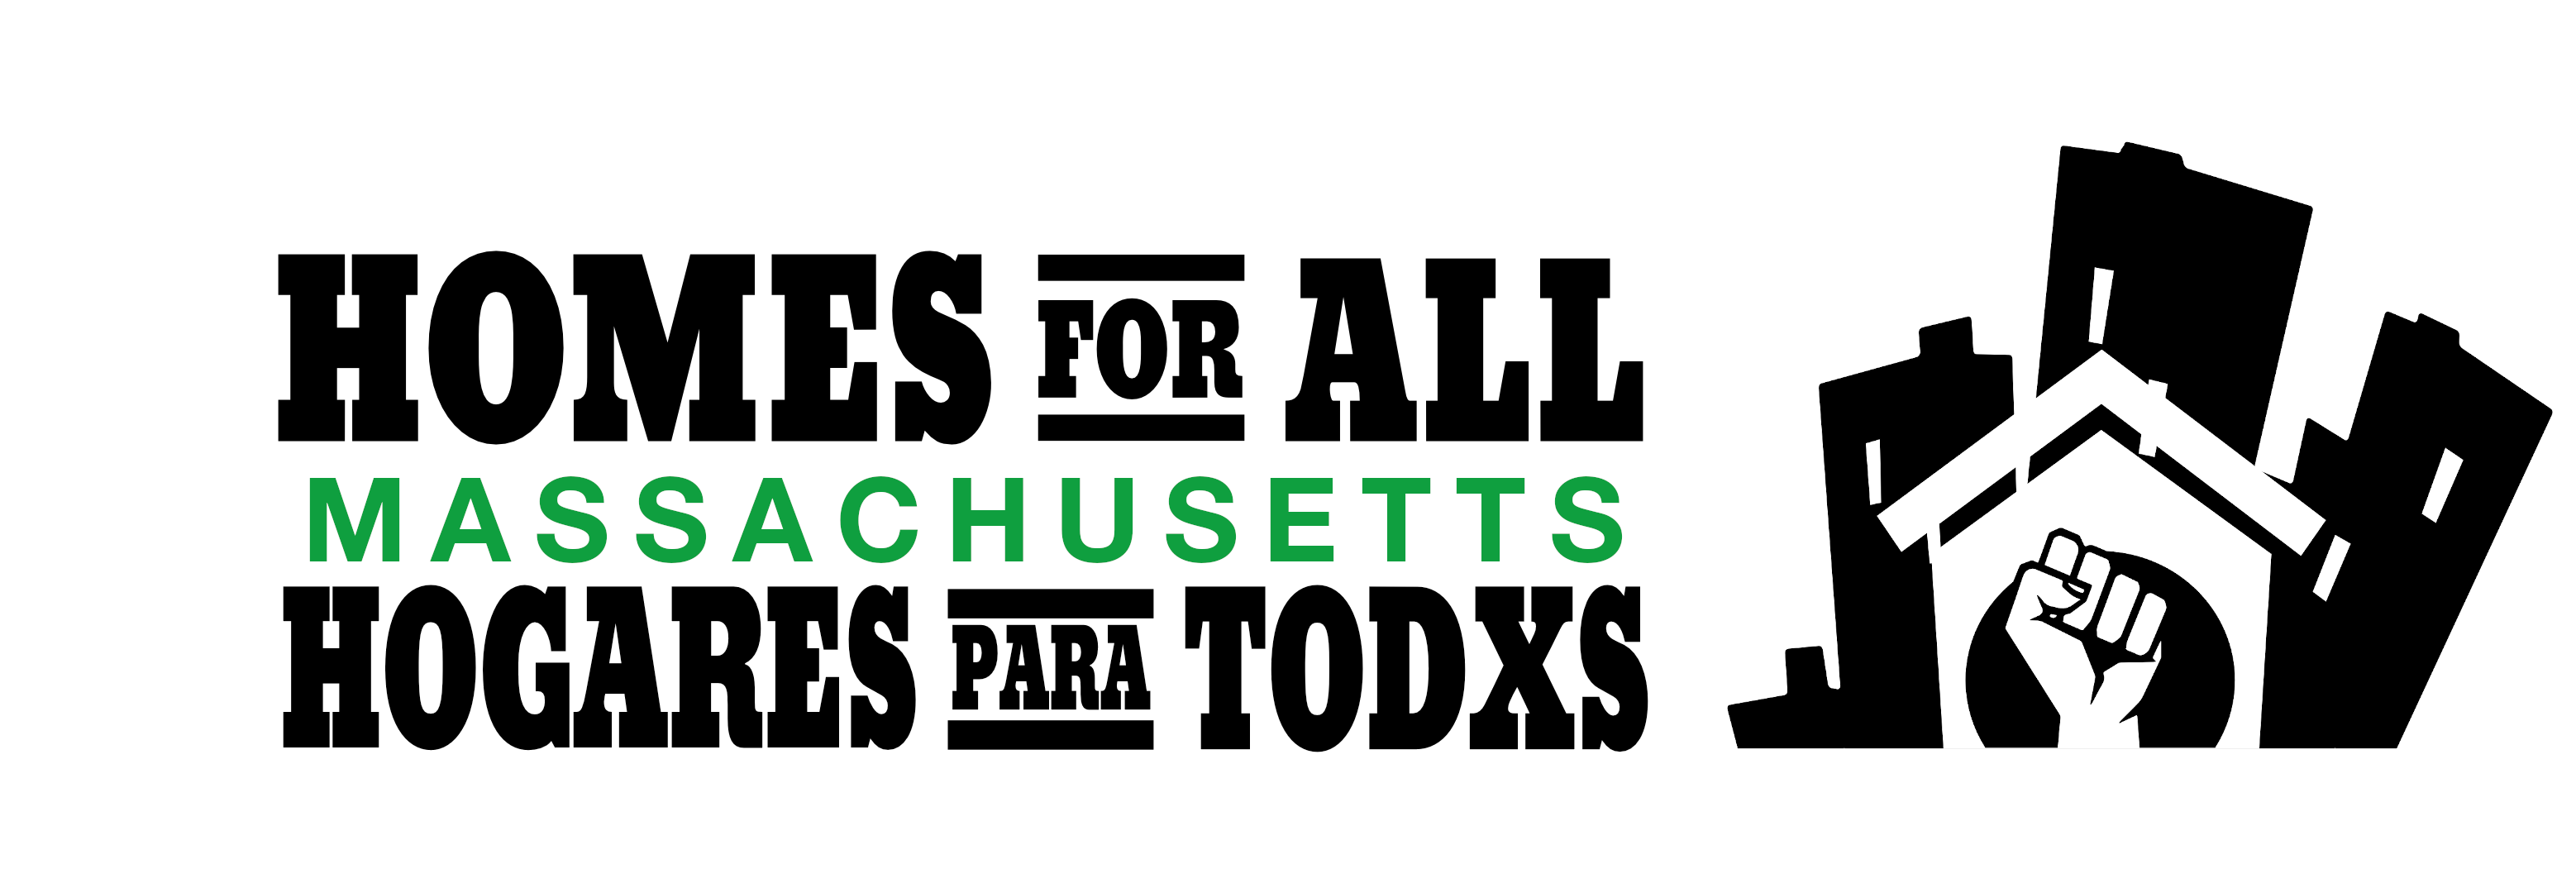 Homes for All Massachusetts